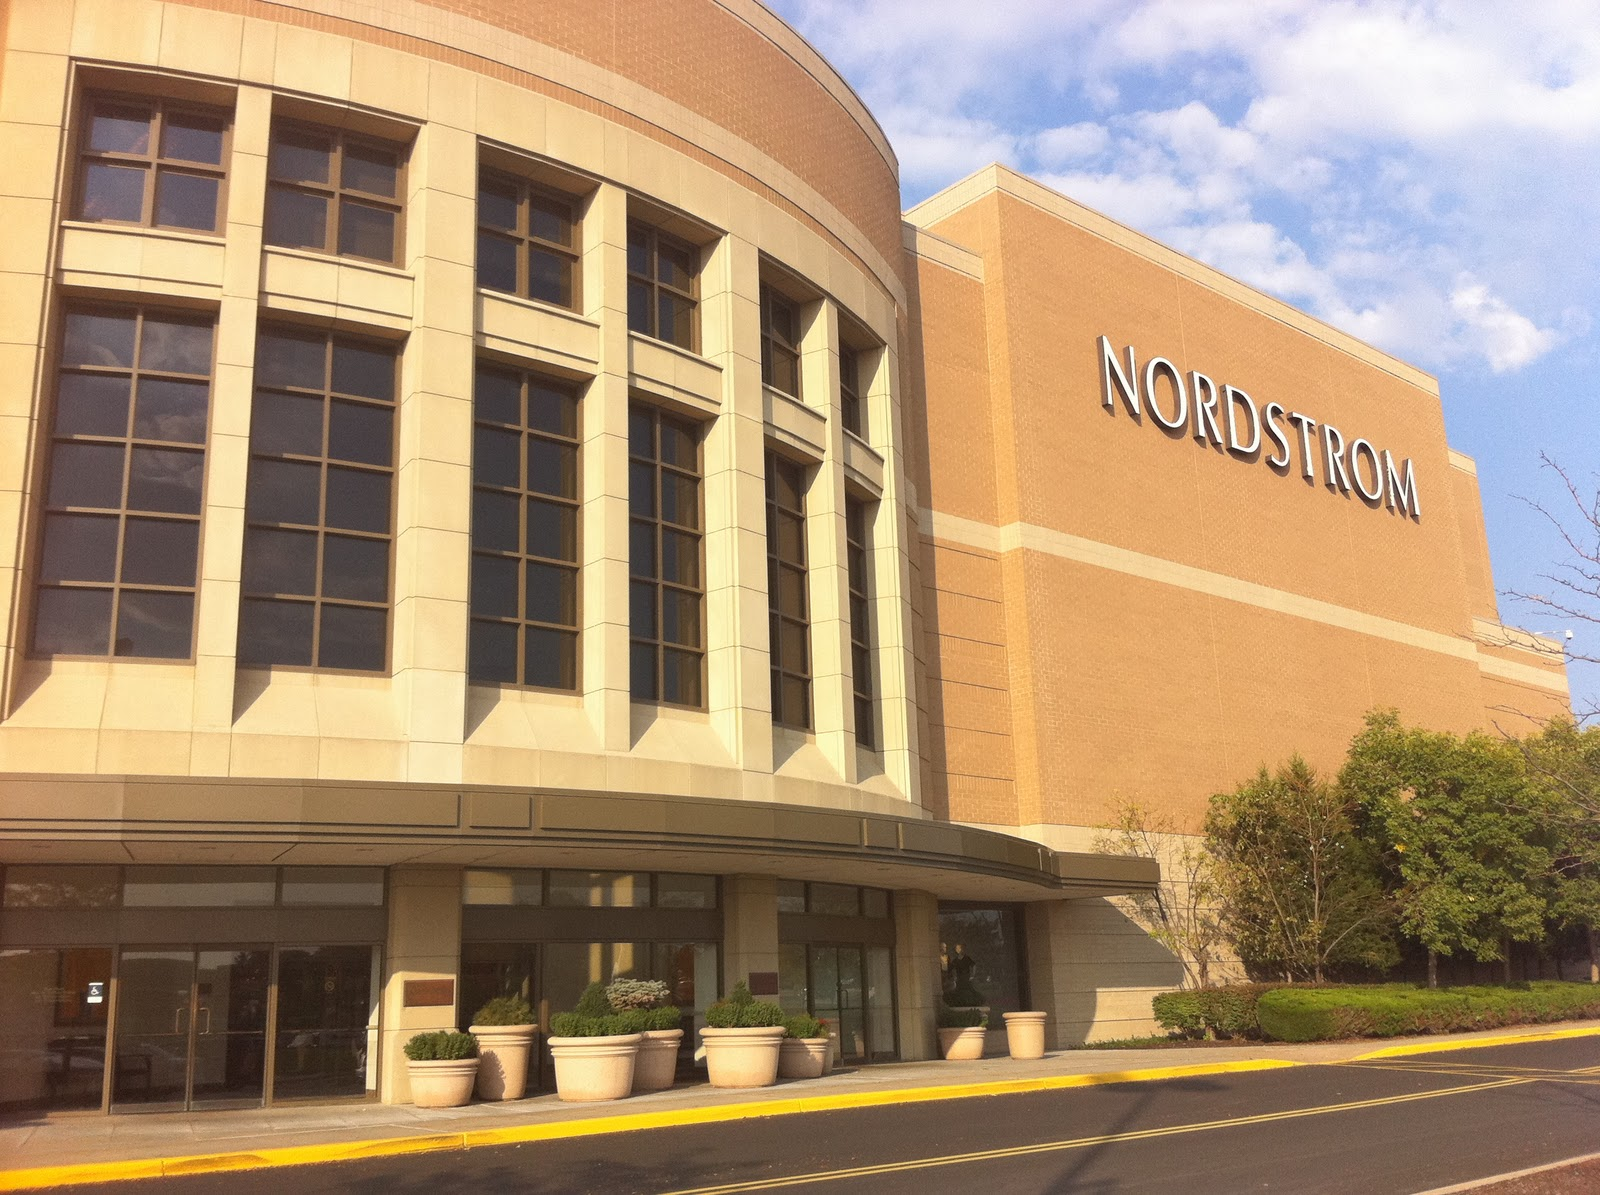 ... city area nordstrom at oak park mall is a popular location for many